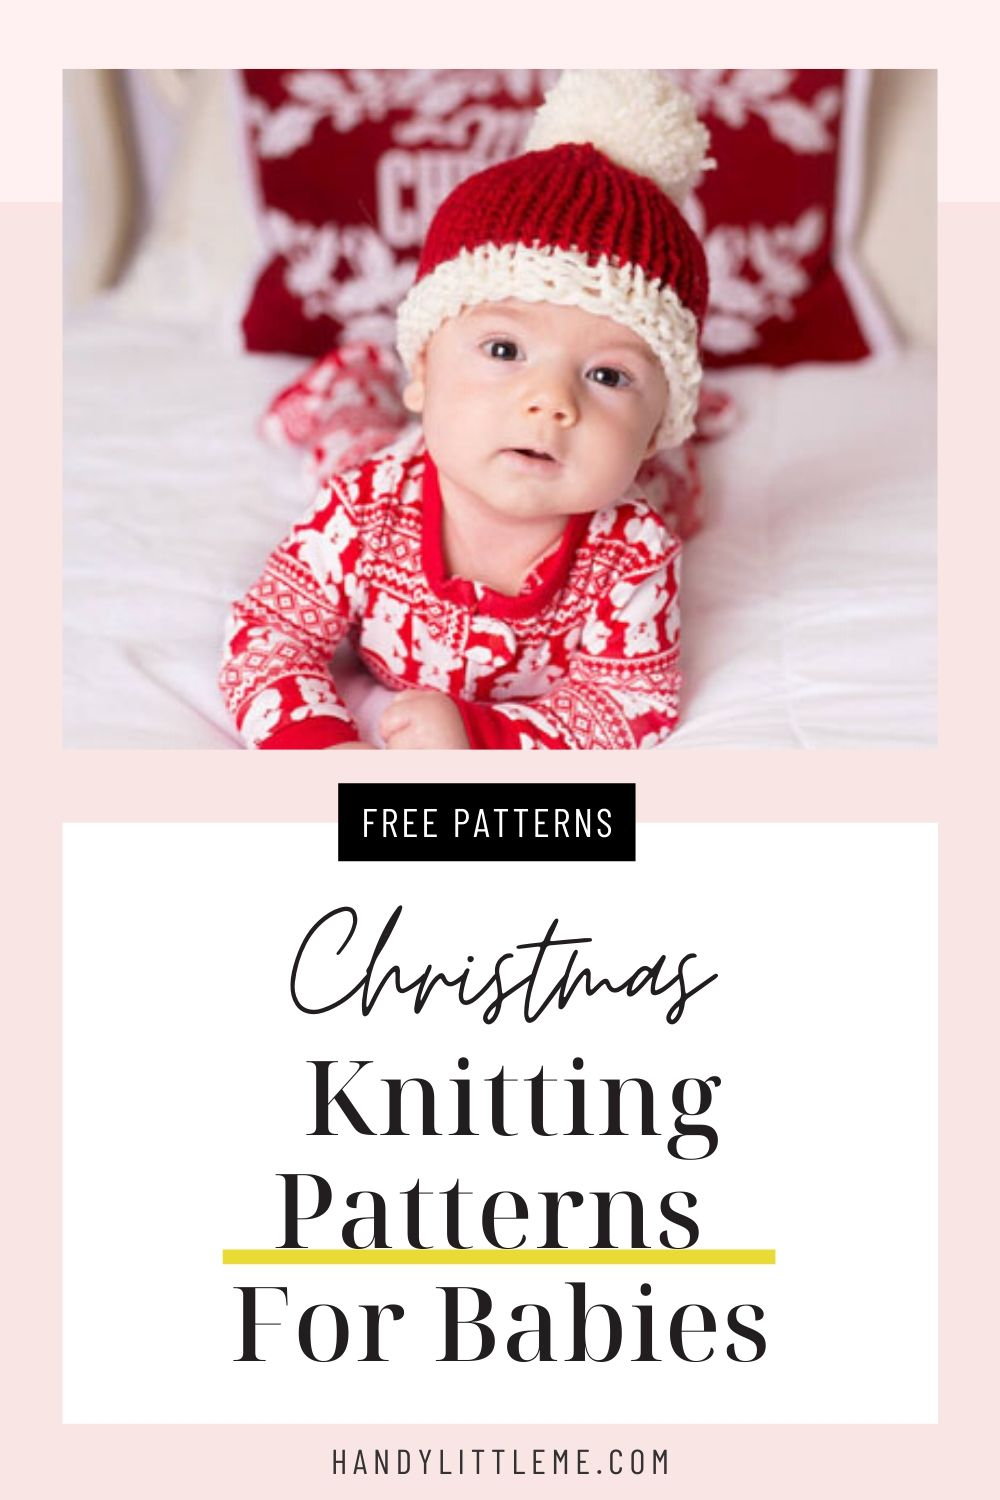 Christmas knitting patterns for babies